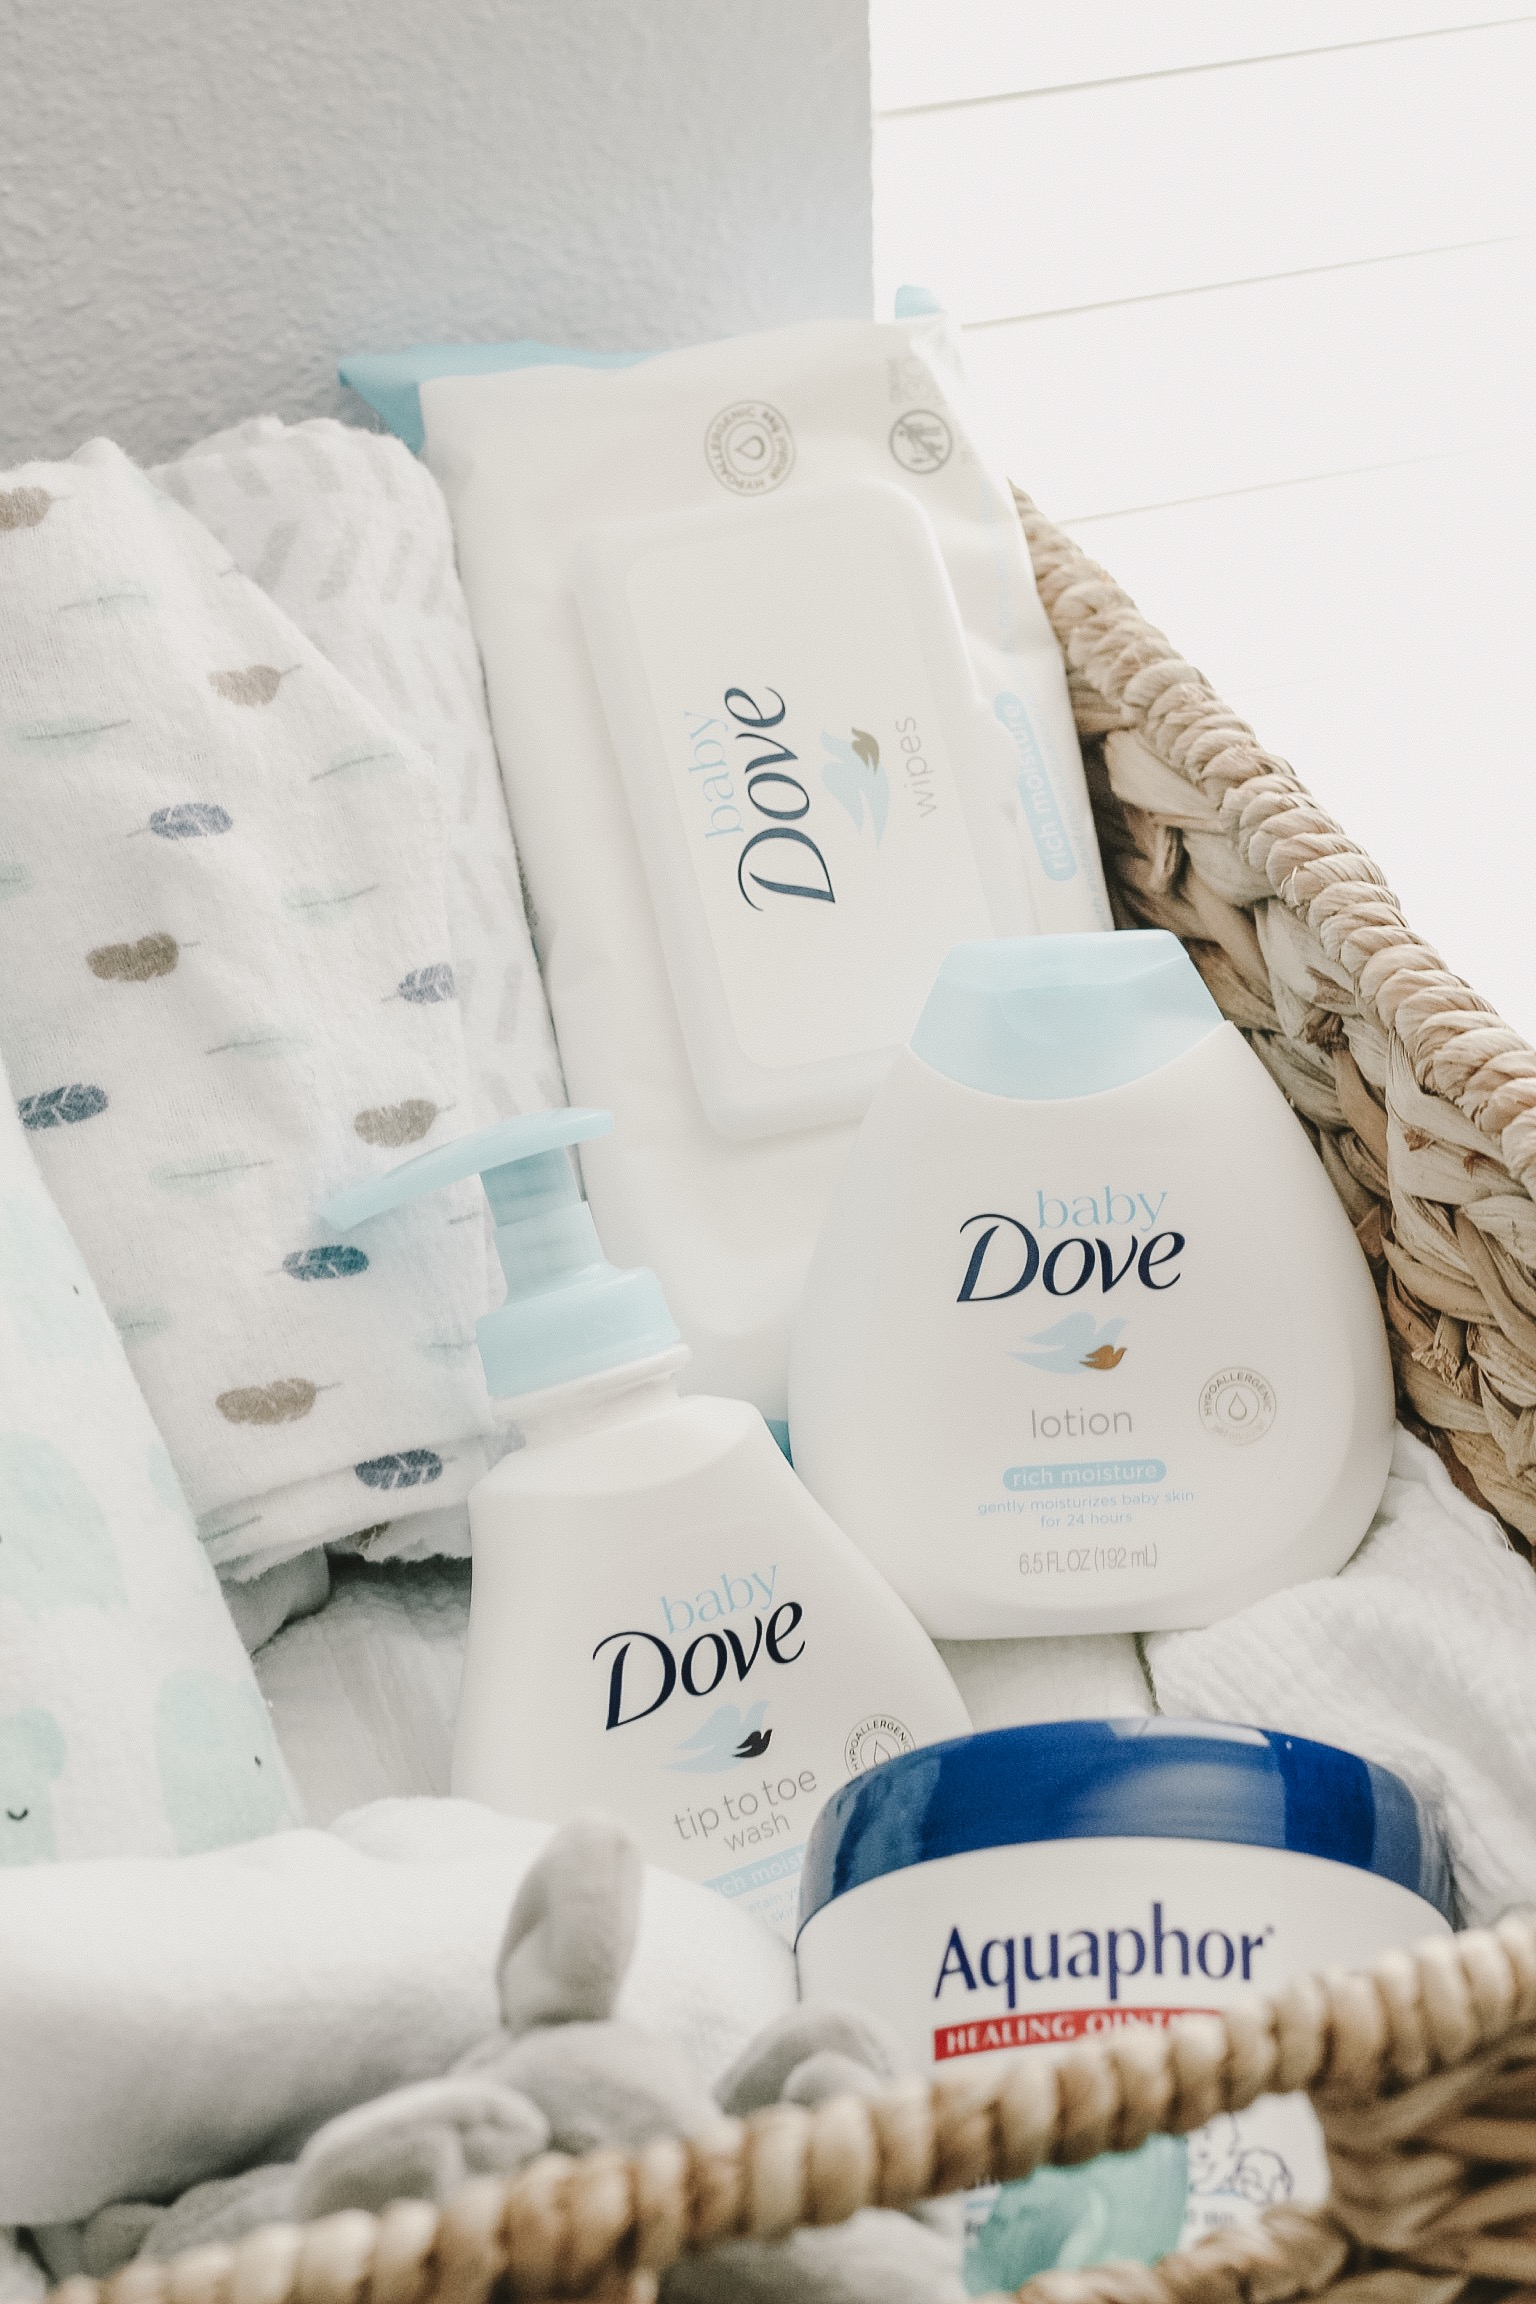 Baby Dove and Aquaphor, baby essentials